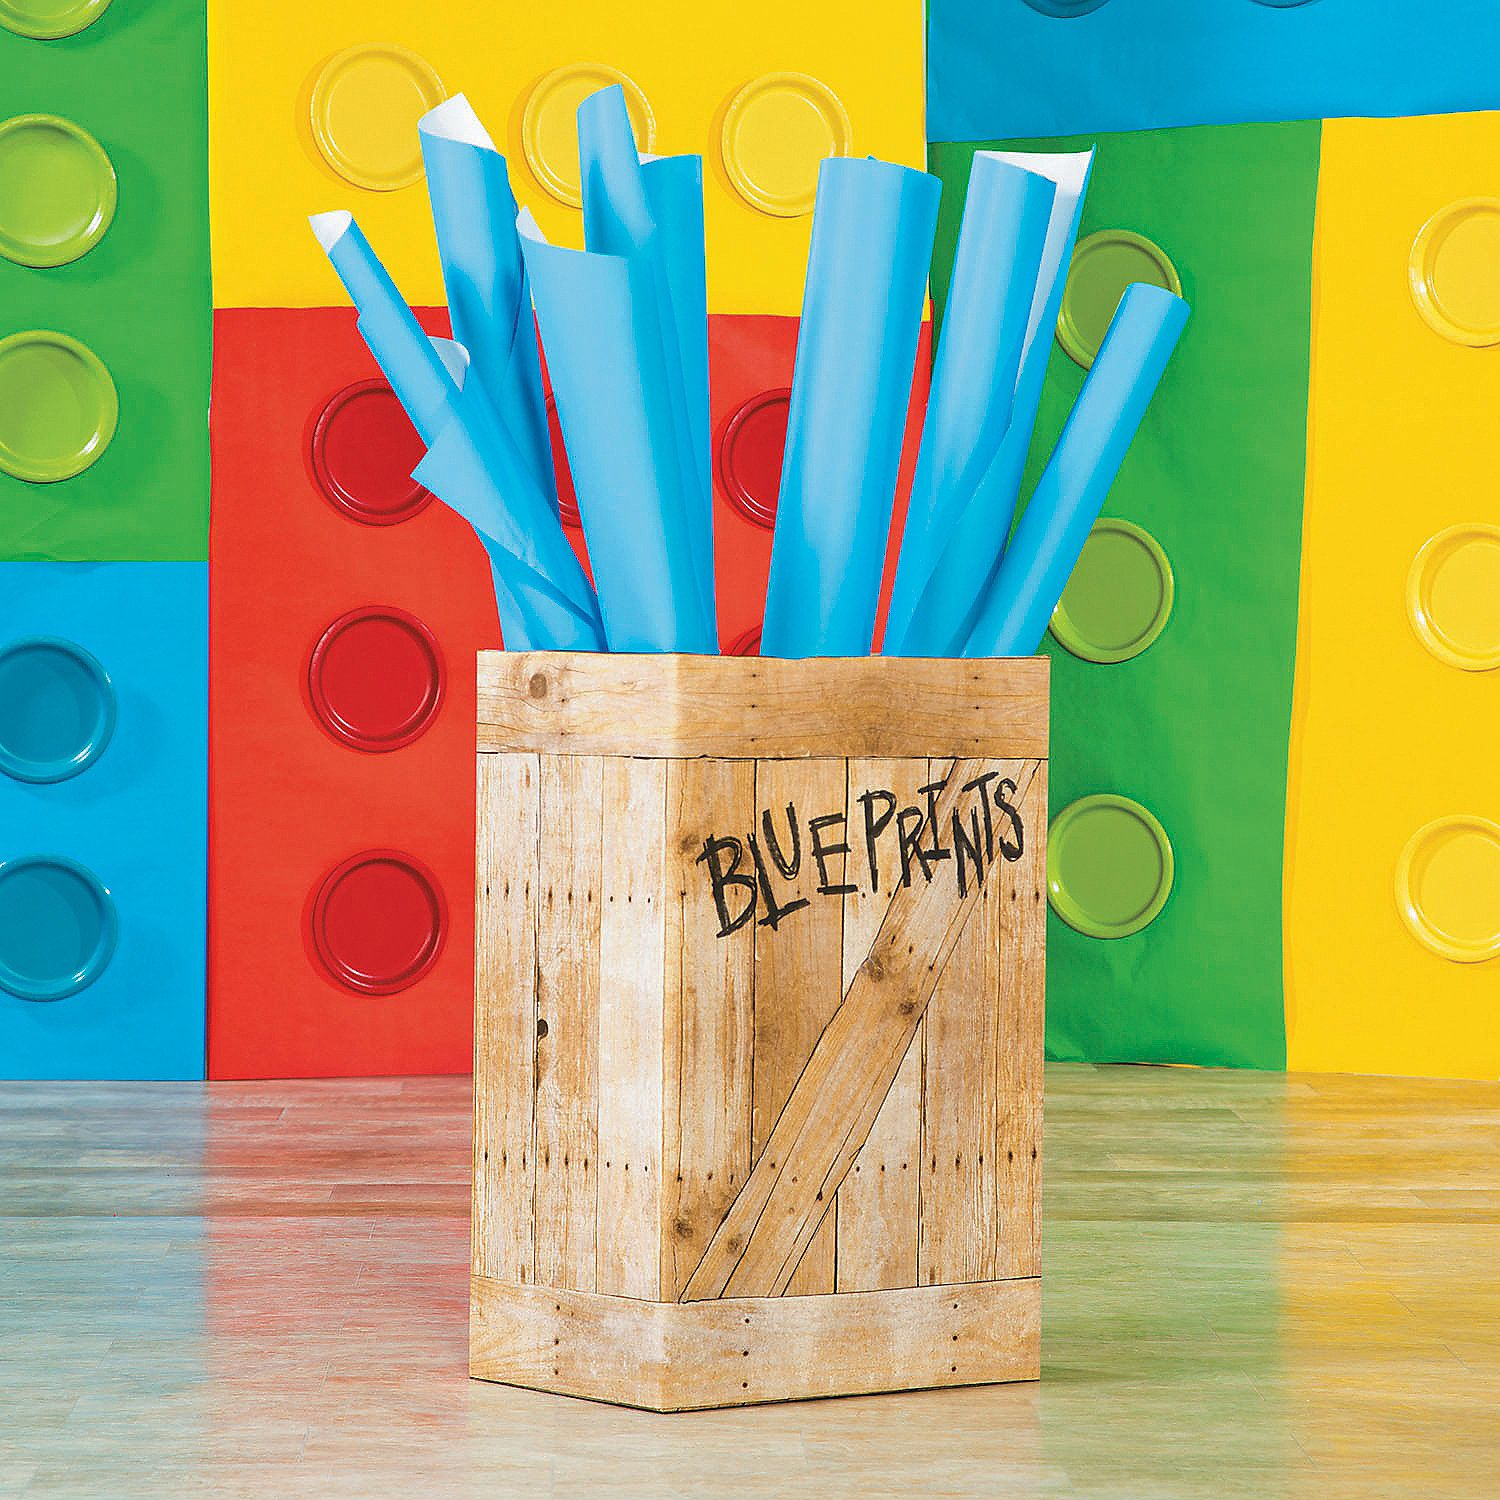 Geared up for god vbs diy blueprint box prop idea for Vacation bible school crafts for adults